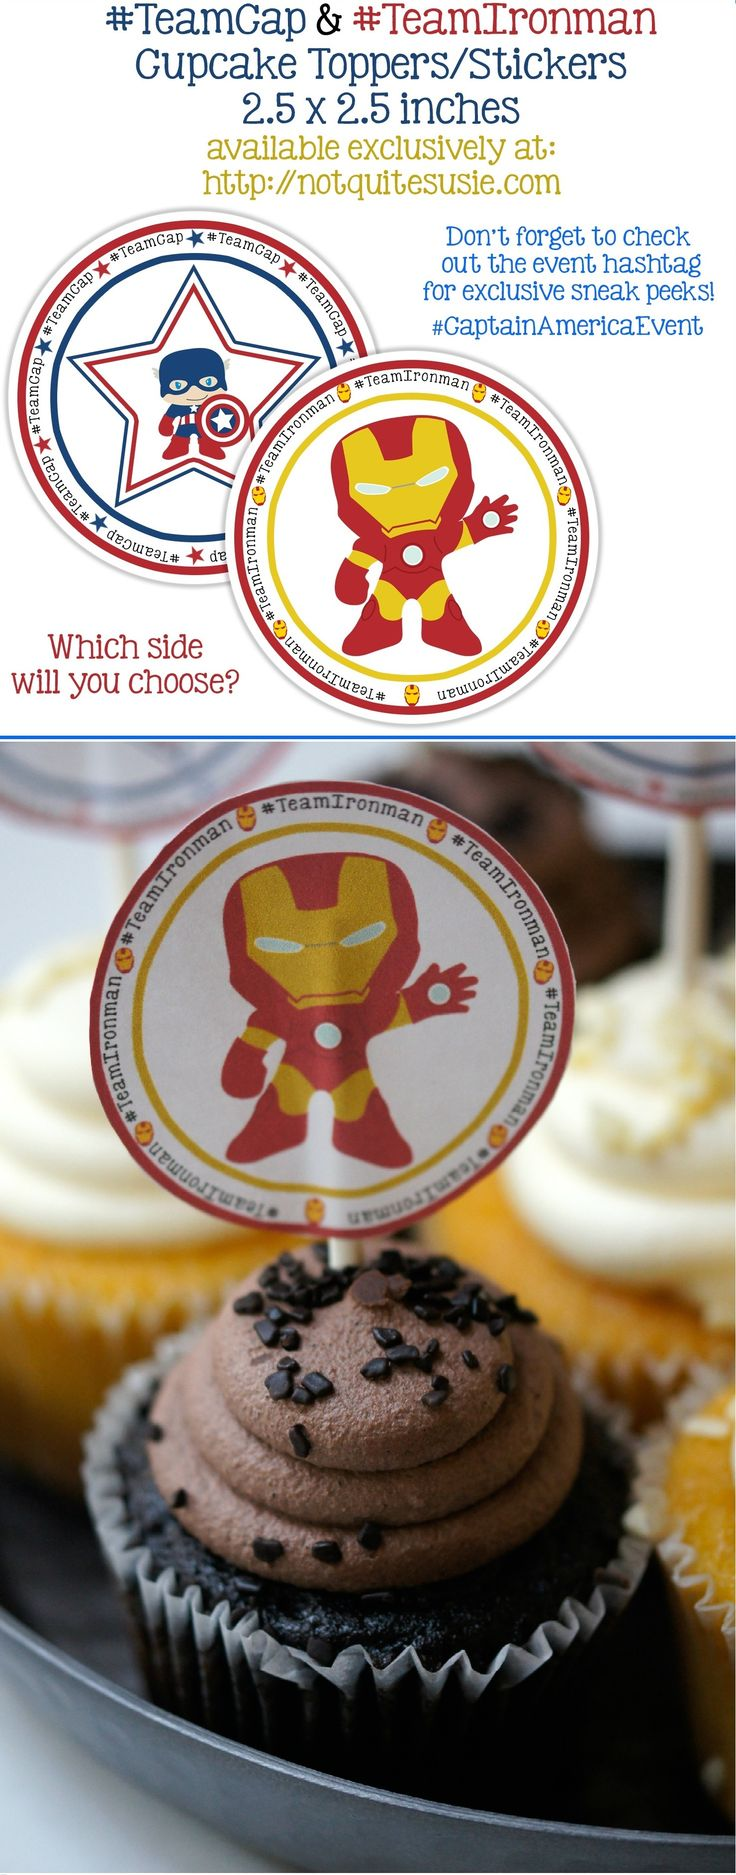 Free Printable Cupcake Toppers for Captain America: Civil War! Whether you're Team Cap or Team Iron Man, make your cupcakes a little more super with these free printables!